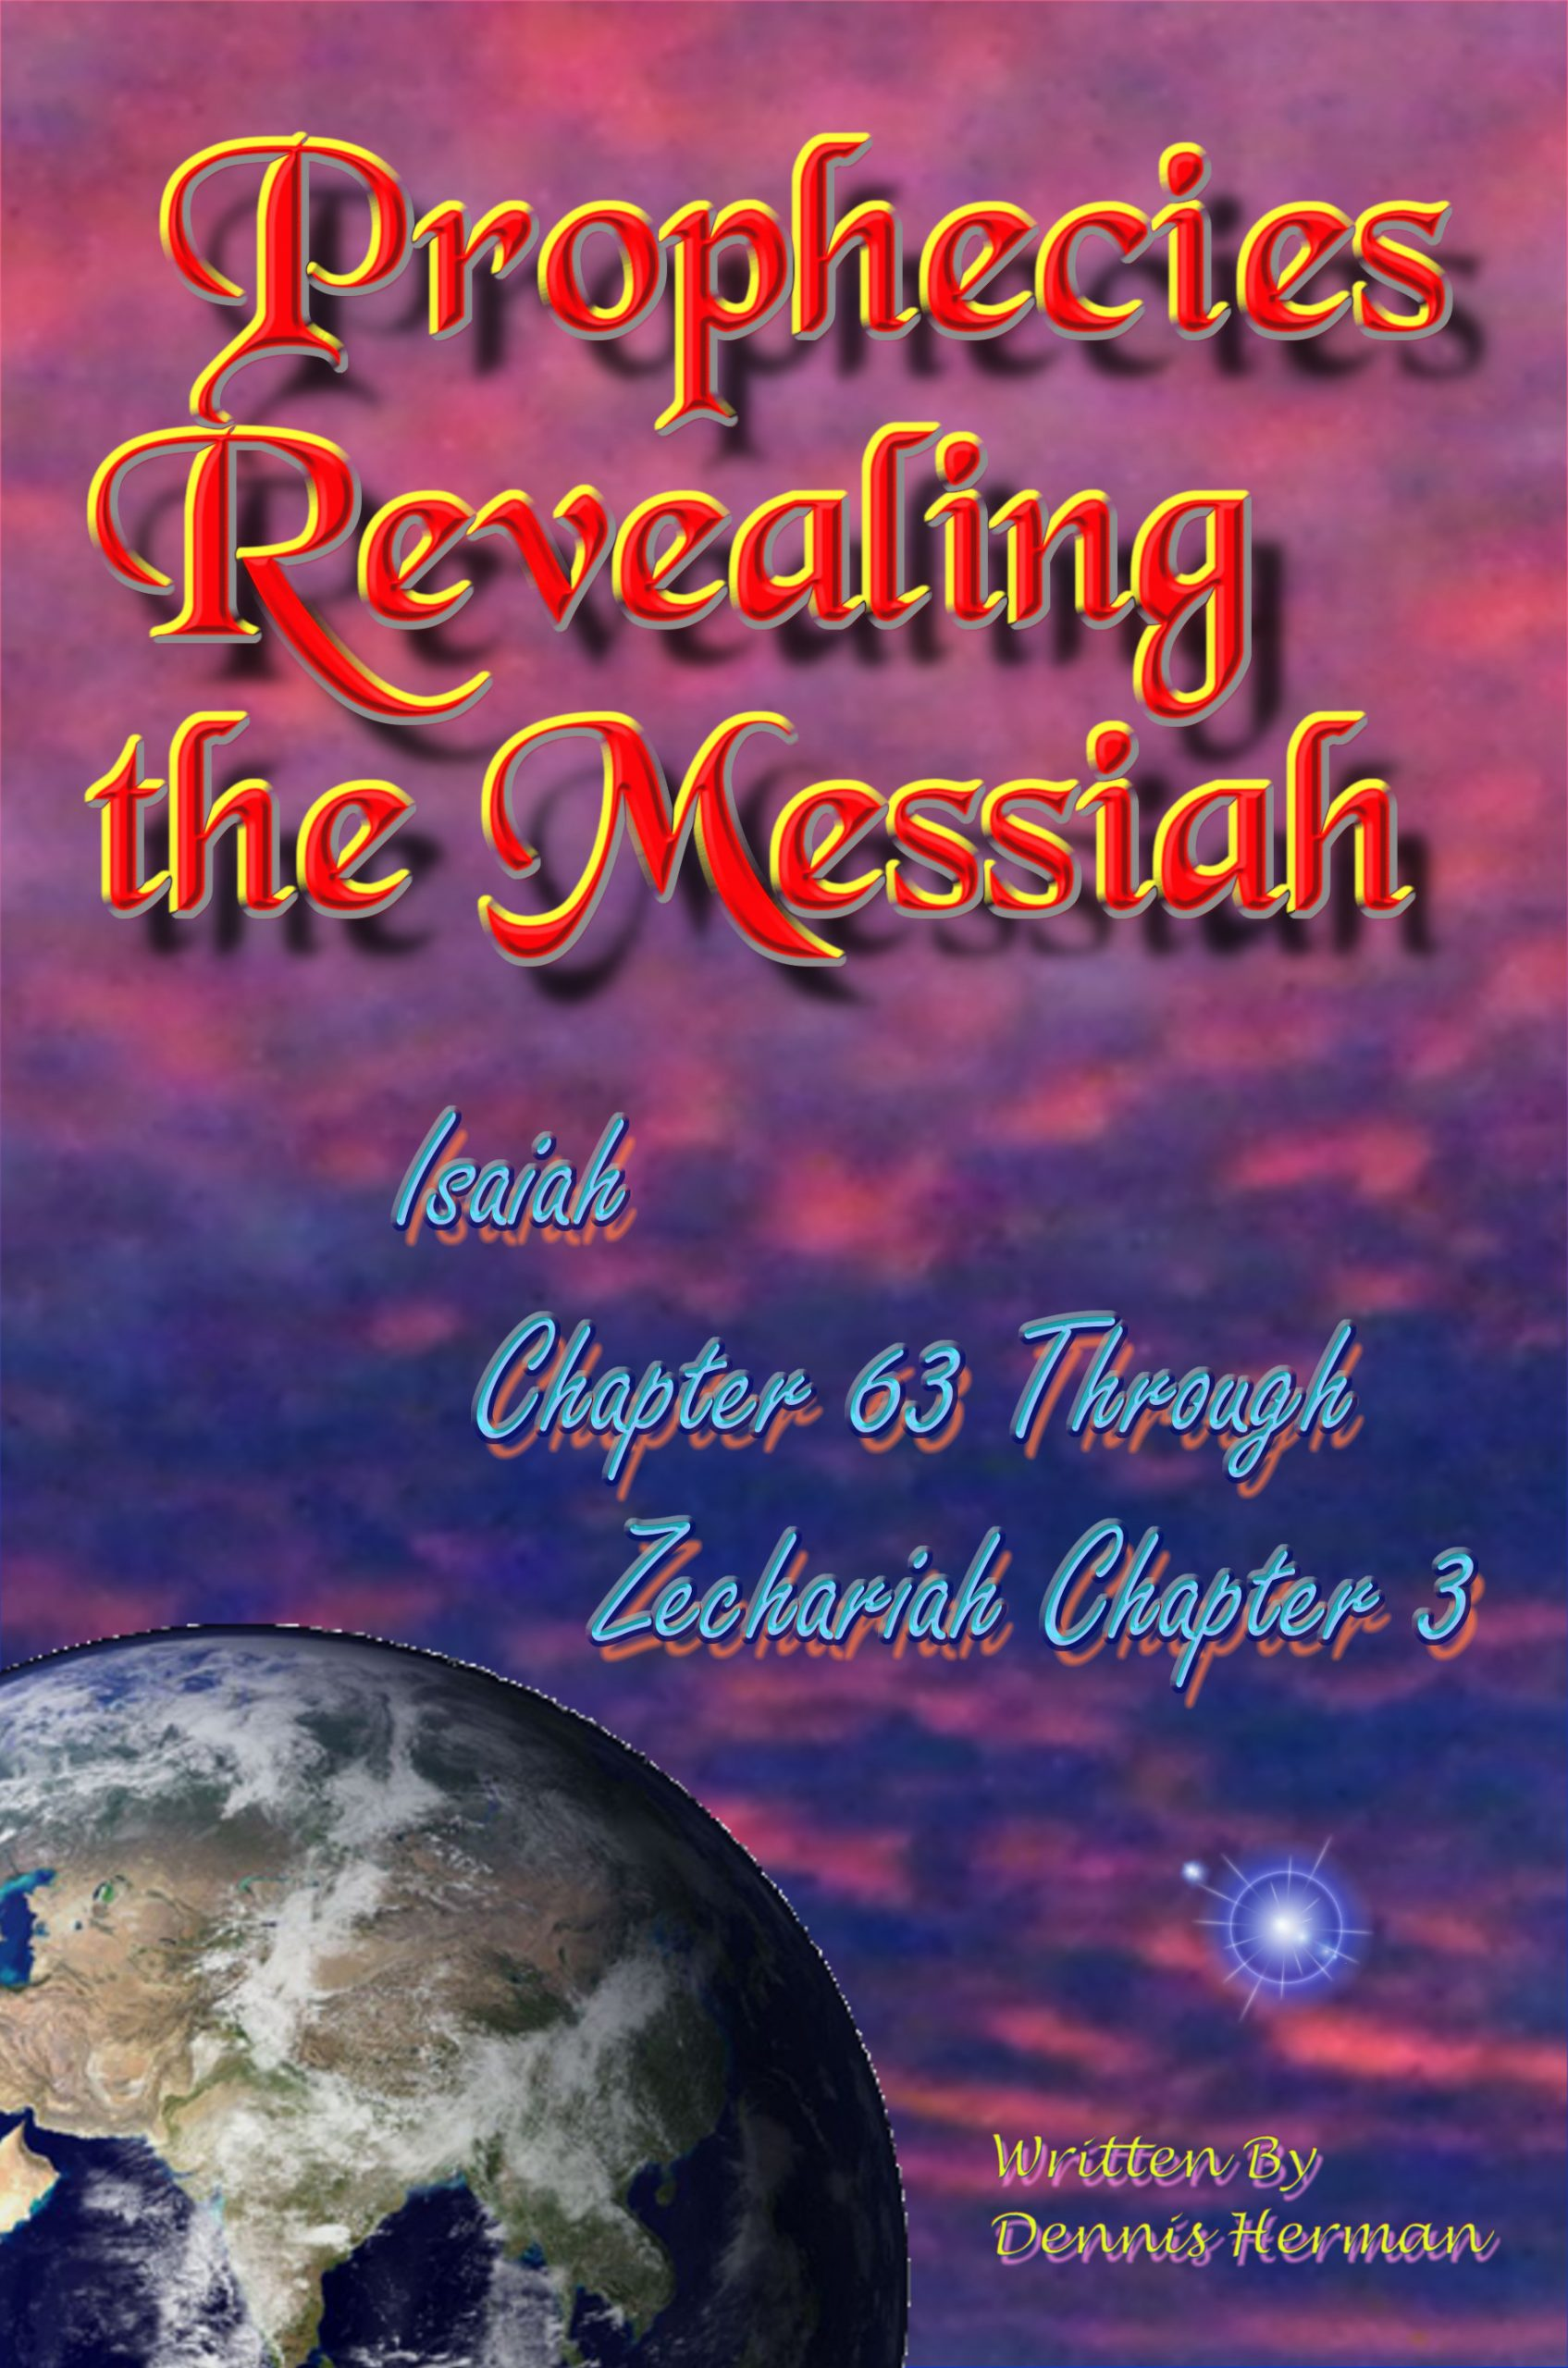 Prophecies Revealing the Messiah Isaiah Chapter 63 Through Zechariah Chapter 3